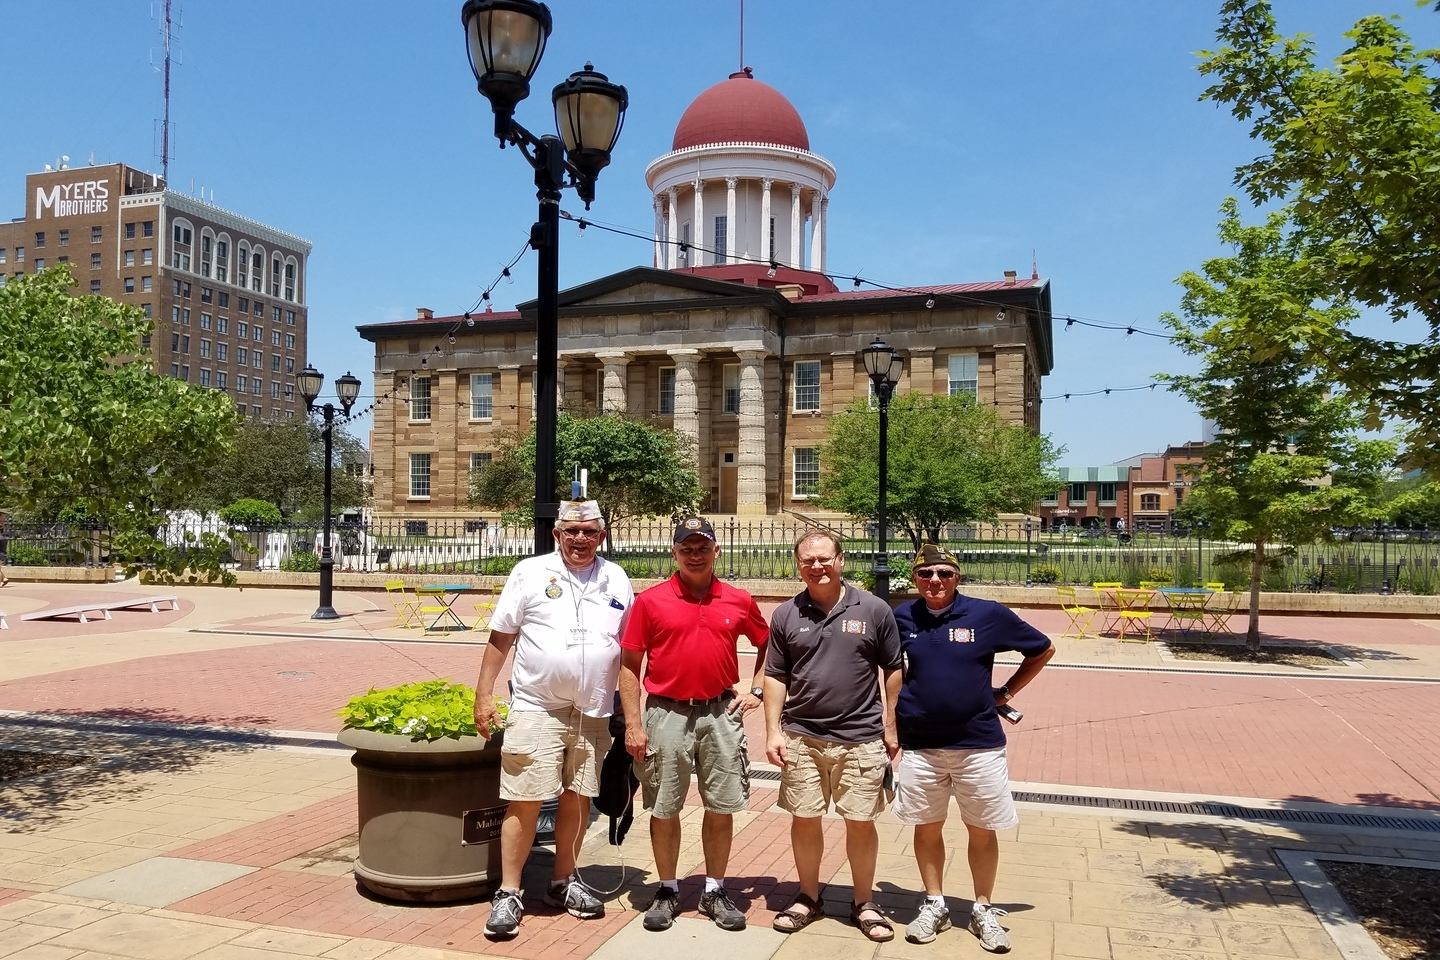 Comrades in front of the Old Capital Building in Springfield, IL